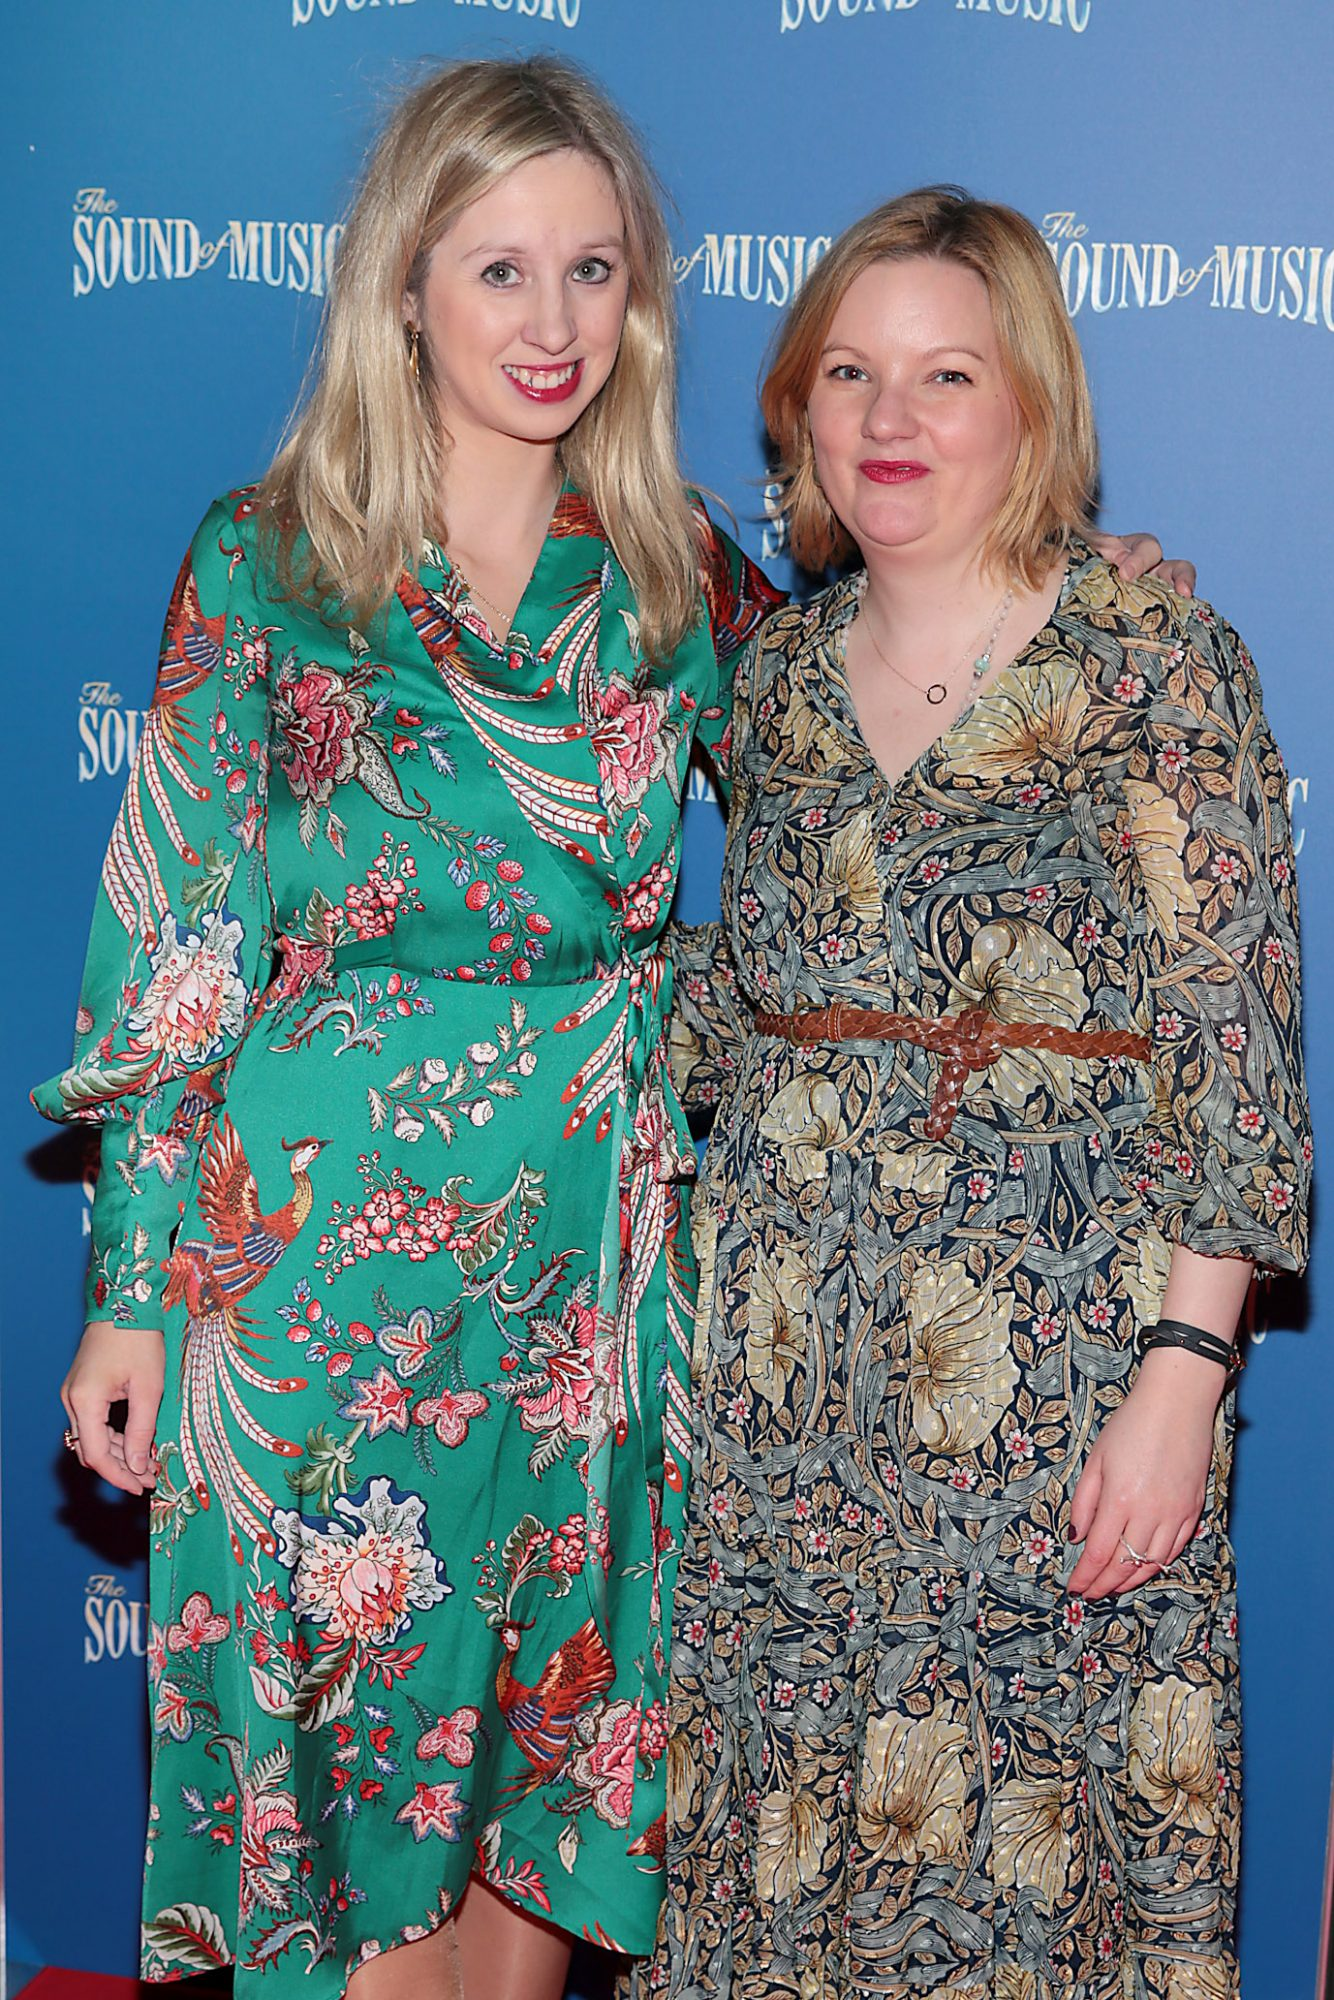 Claire Hyland and Roisin Coulter pictured at the opening night of The Sound of Music at the Bord Gais Energy Theatre,Dublin. Pic Brian McEvoy